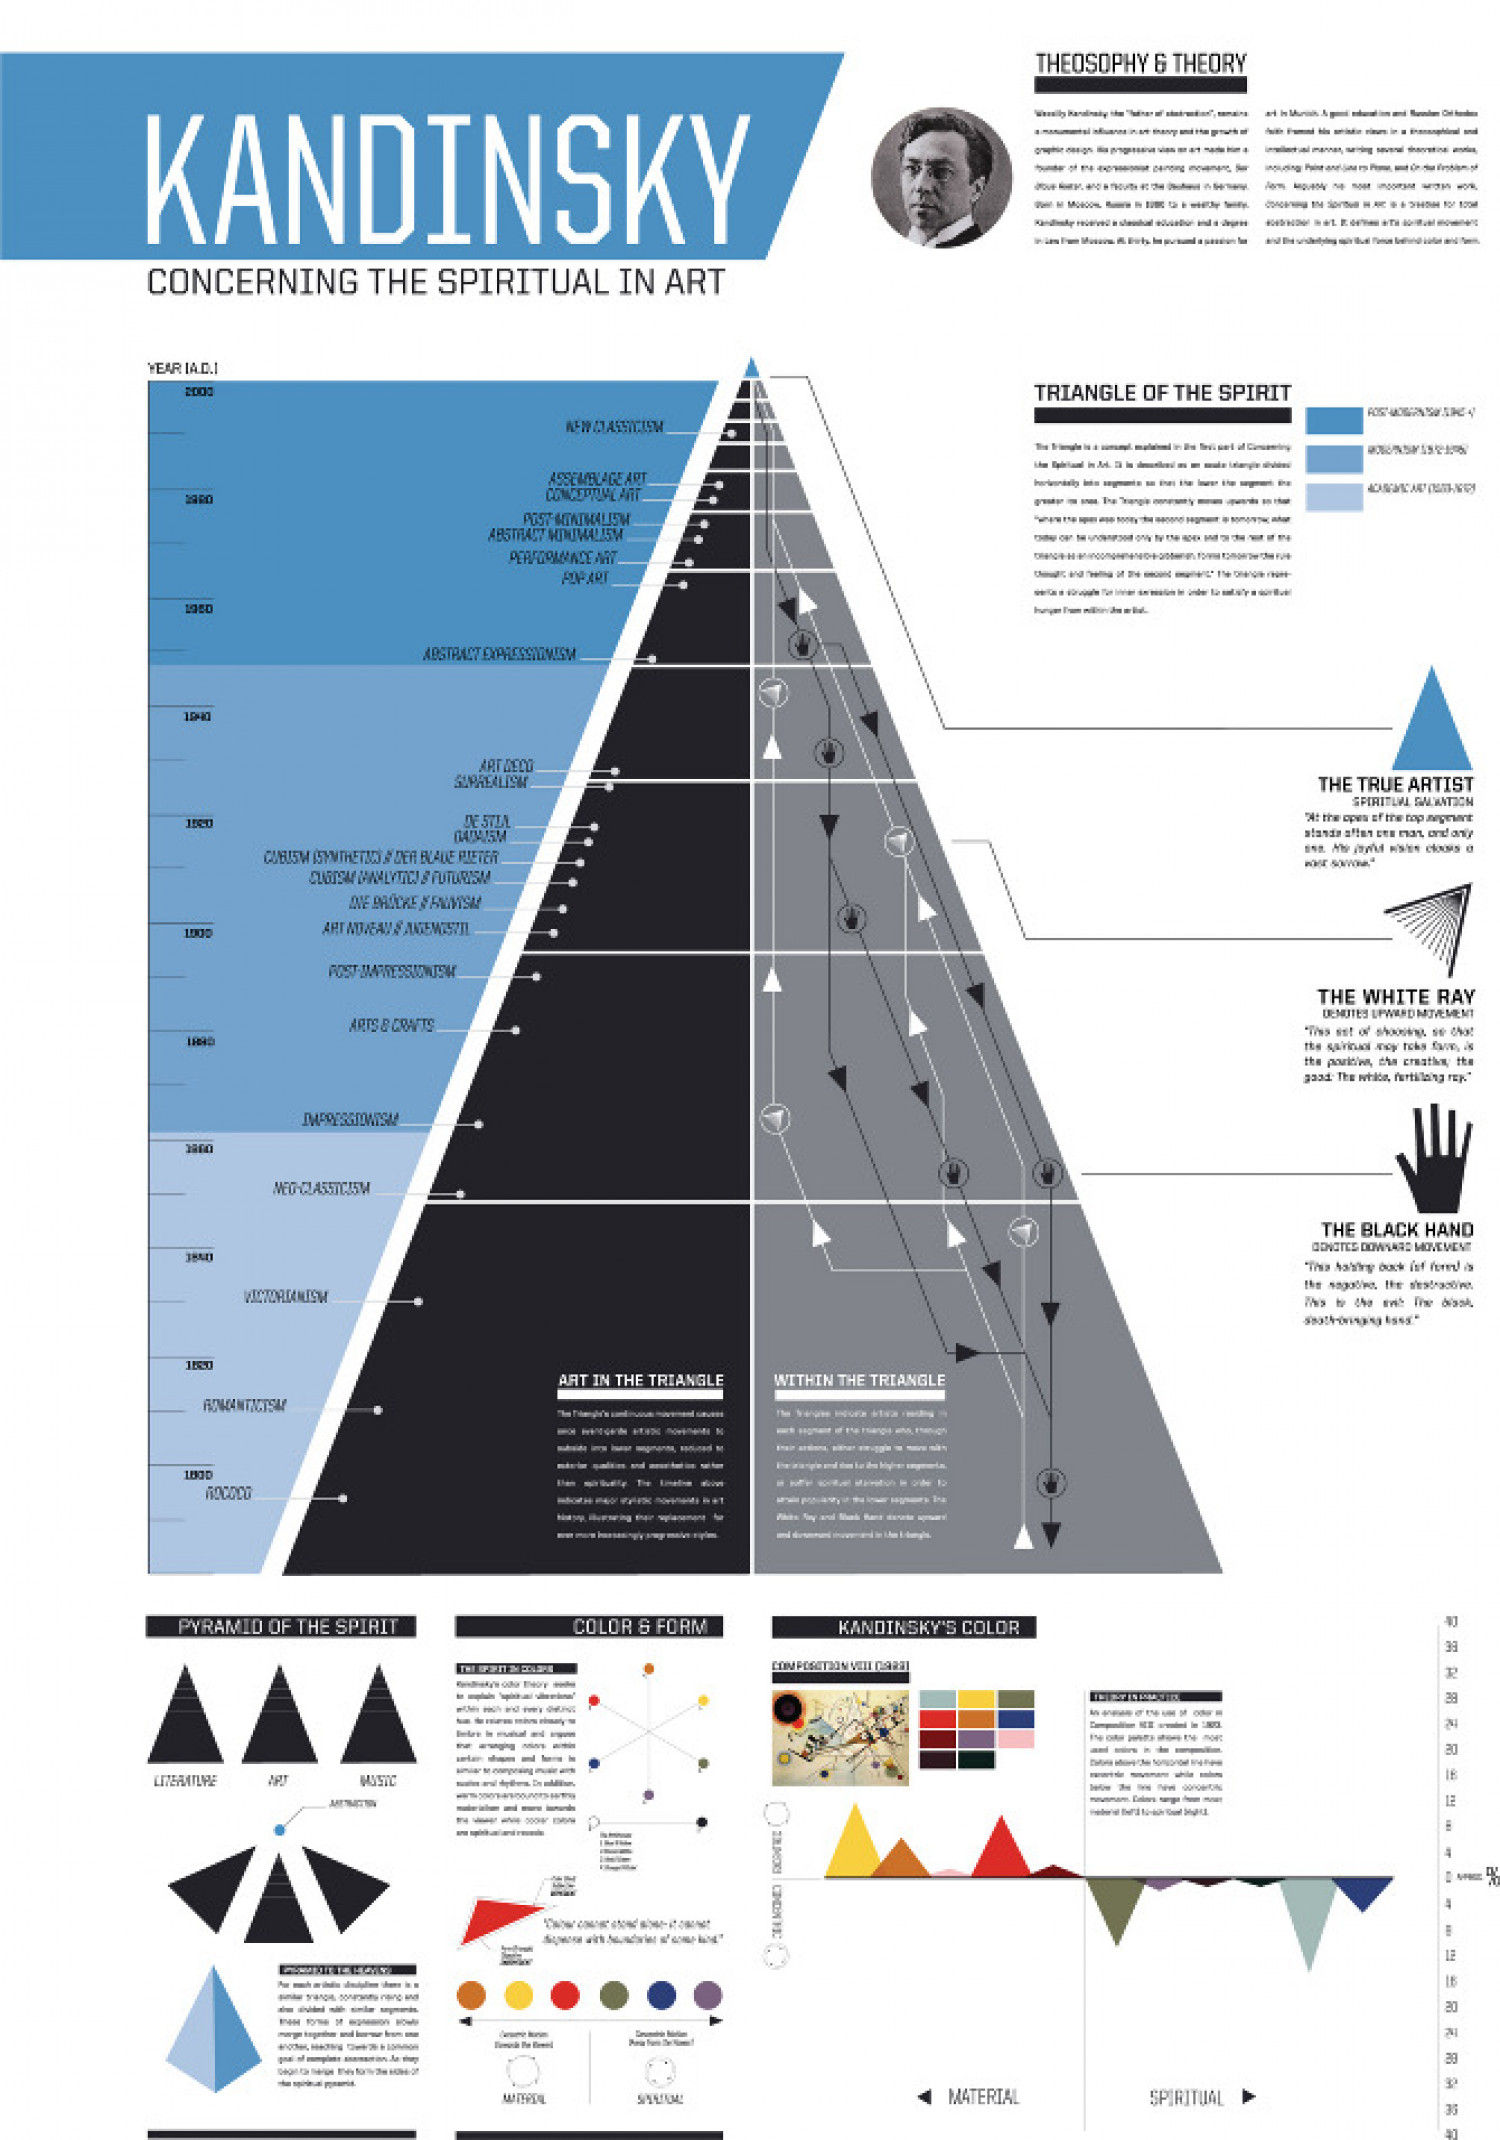 Kandinsky Concerning the Spiritual in Art Infographic